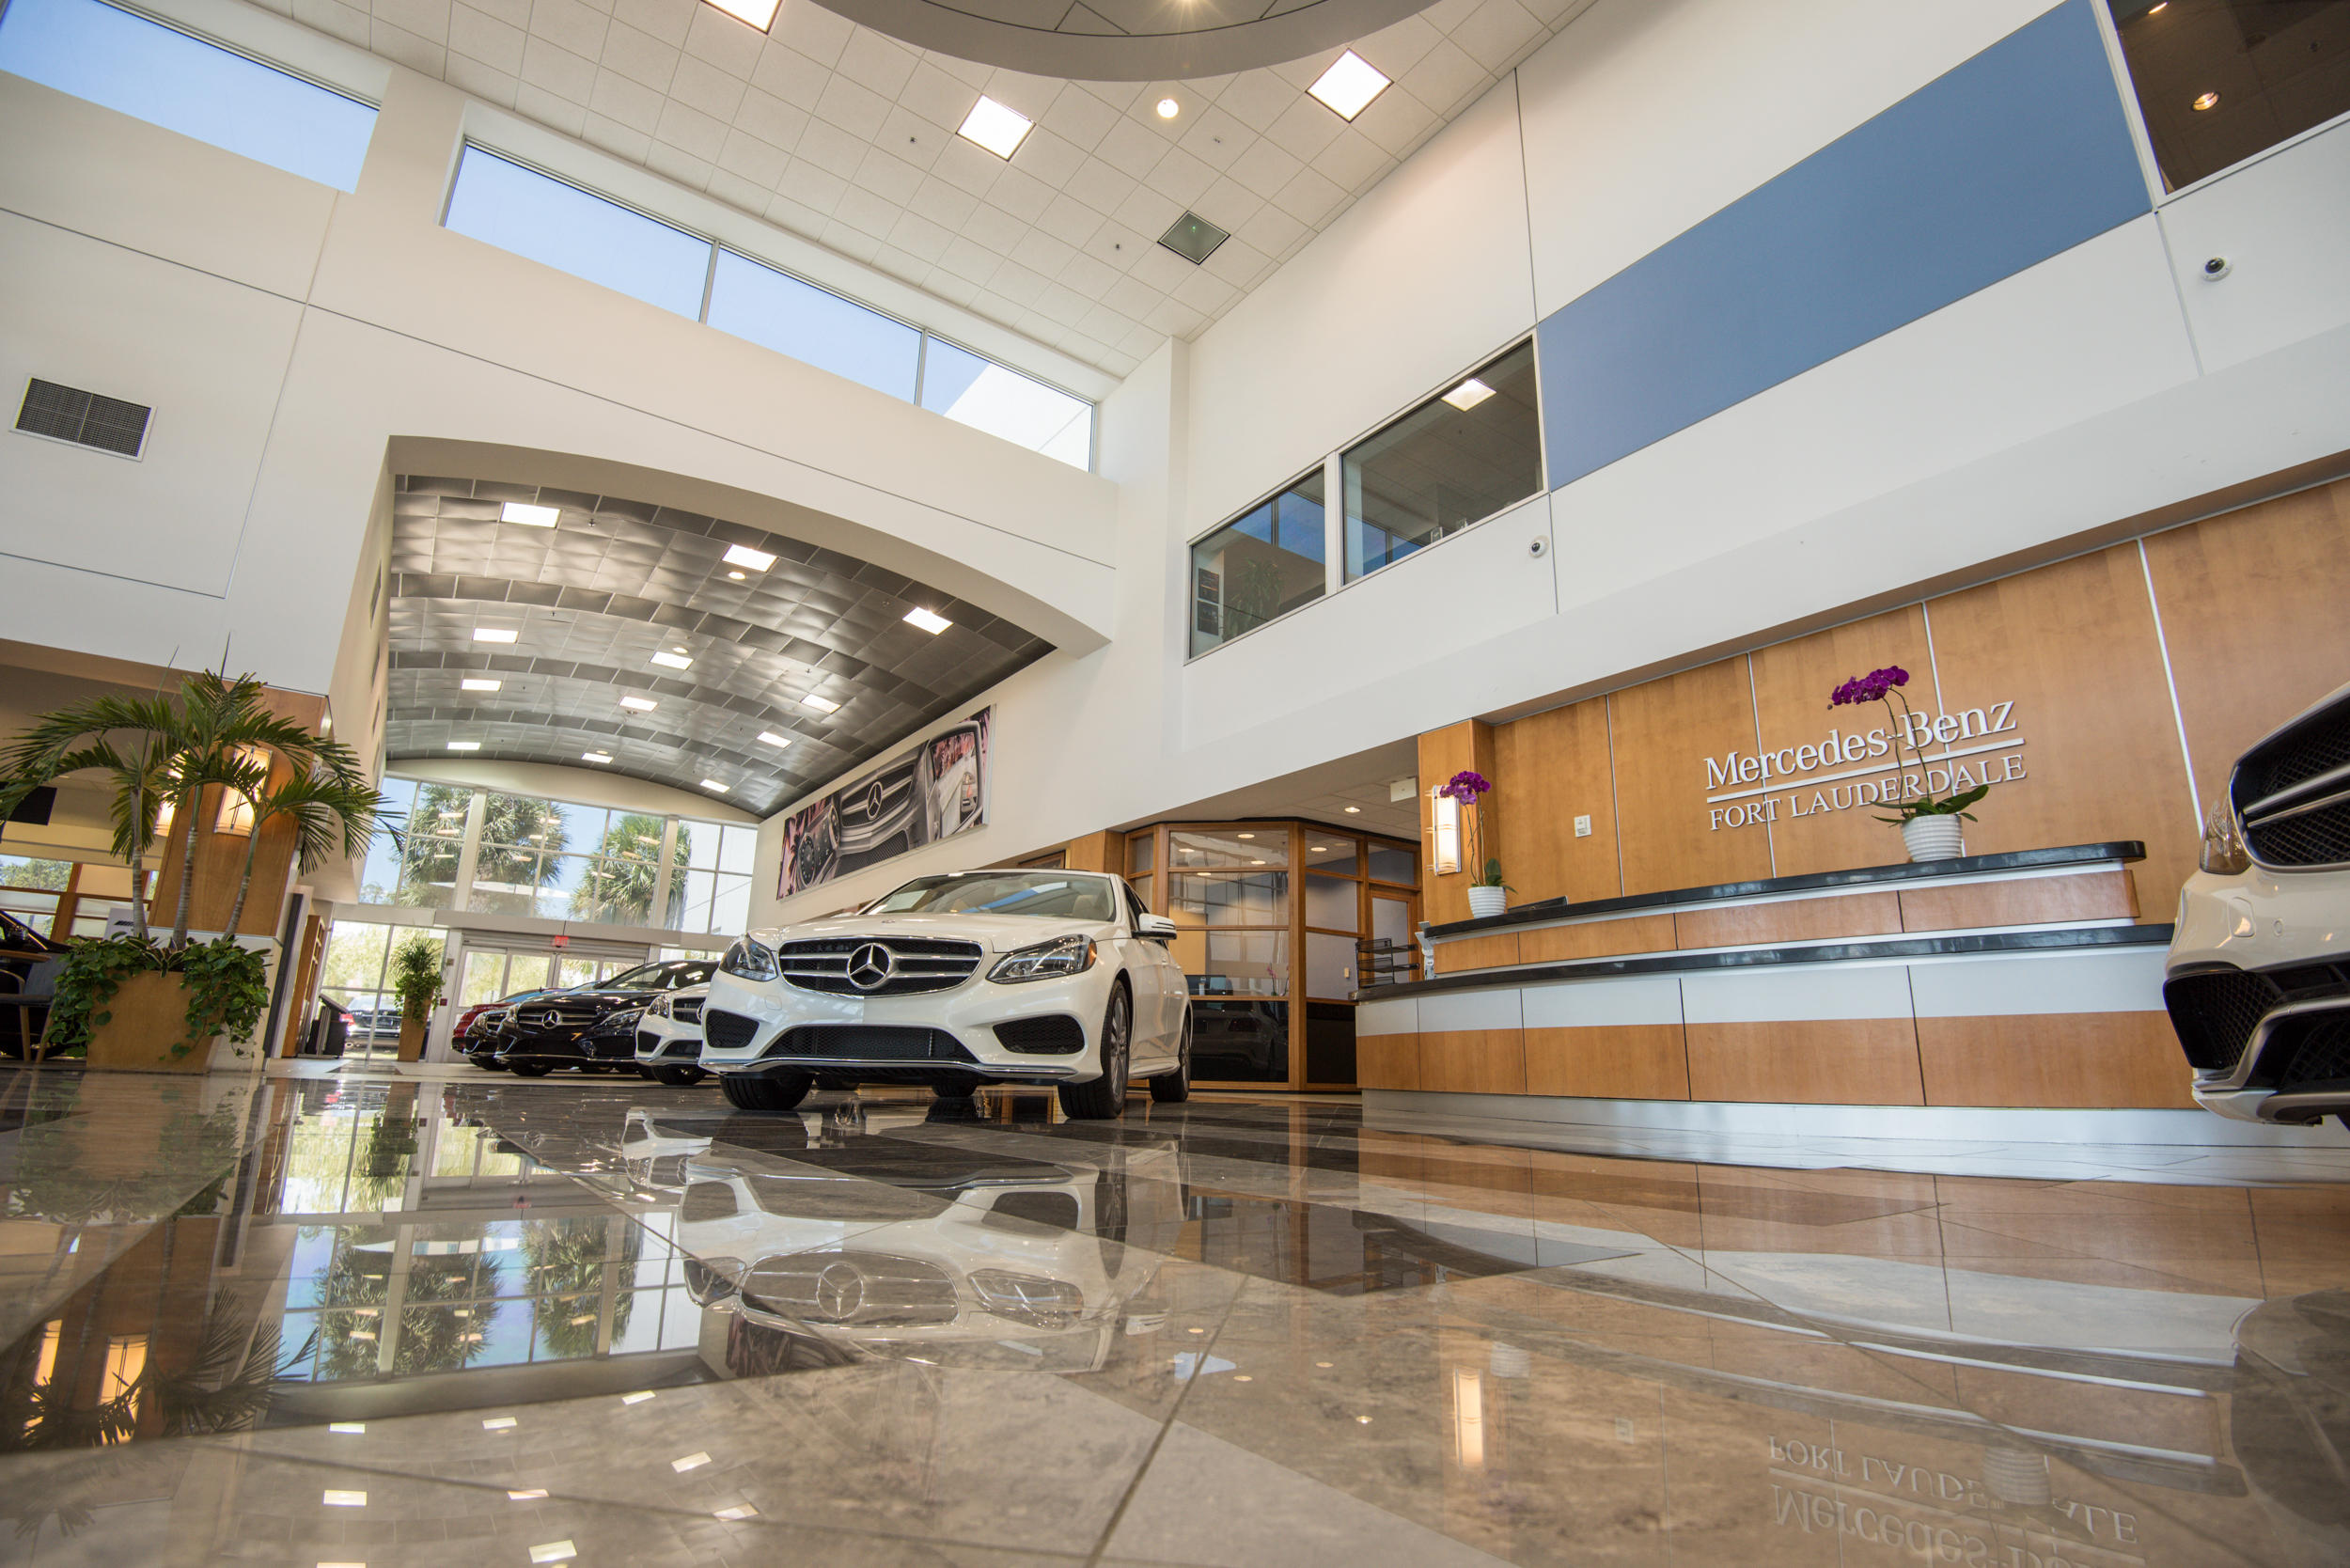 Mercedes benz of ft lauderdale coupons near me in ft for Mercedes benz oil change near me